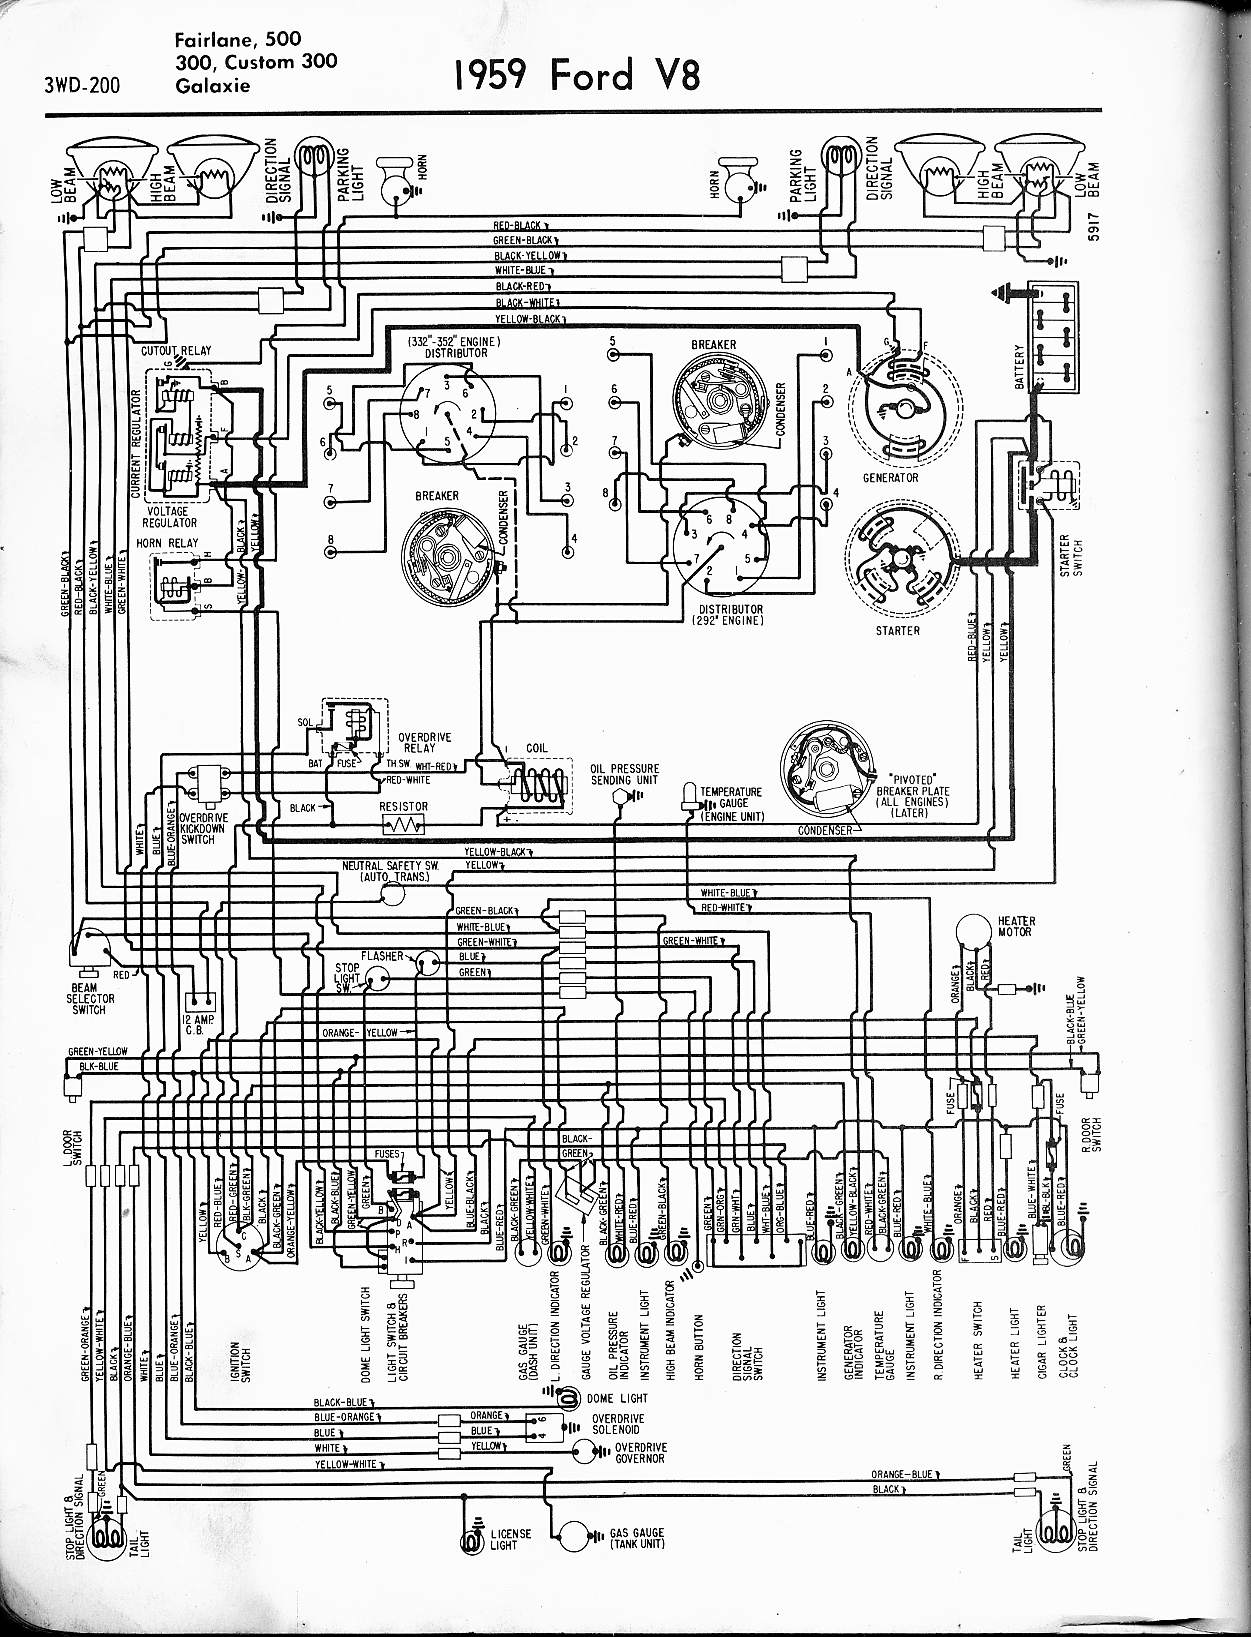 1958 Ford Wiring Harness Diagram Will Be A Thing Engine Kit 1956 Fairlane Simple Rh David Huggett Co Uk